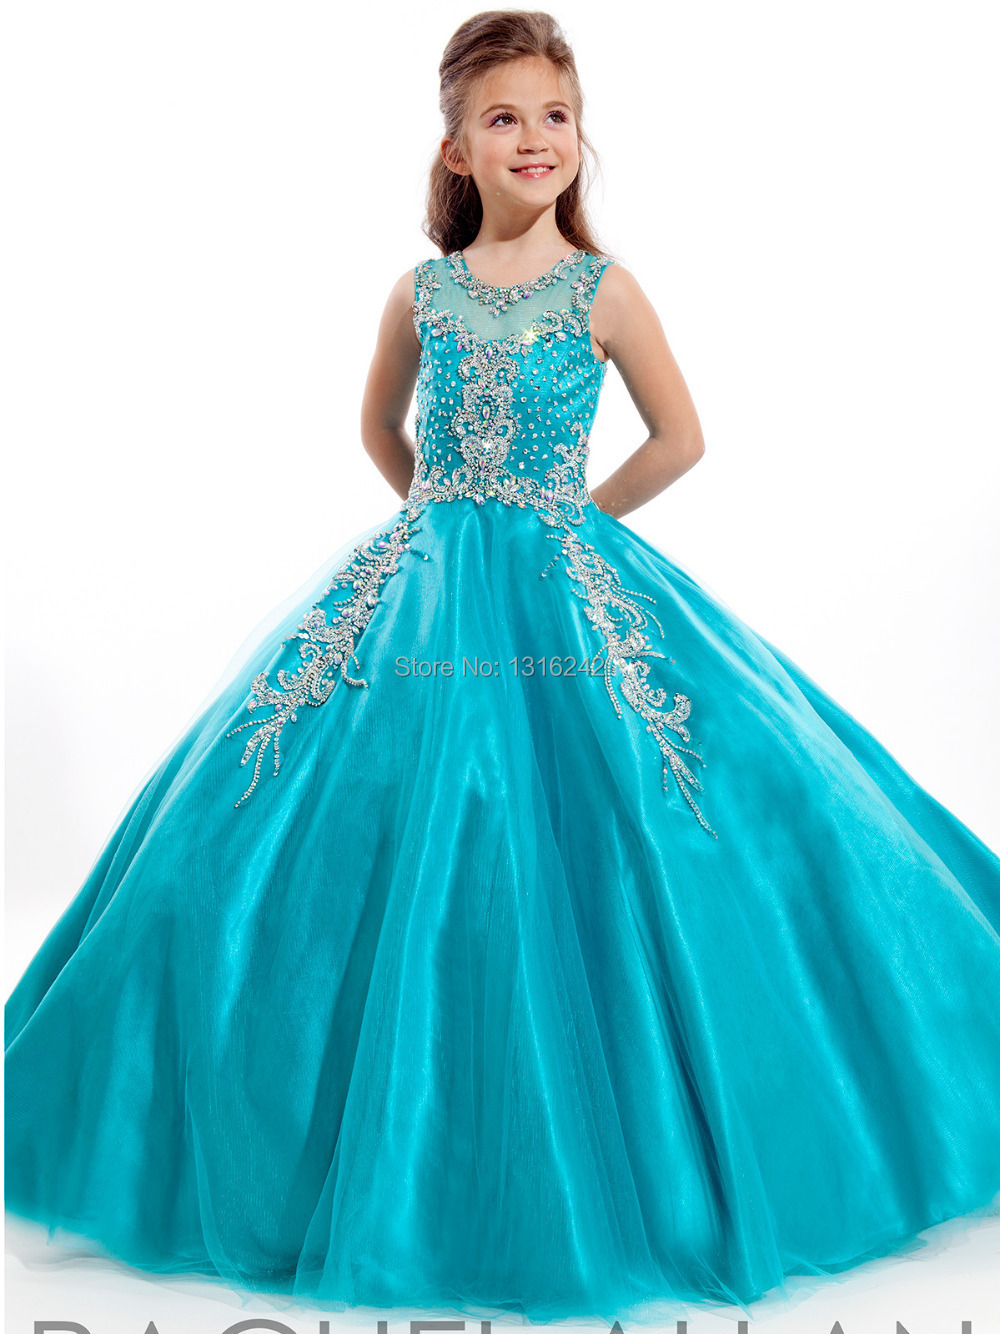 Cheap Colorful Ball Gown, find Colorful Ball Gown deals on line at ...